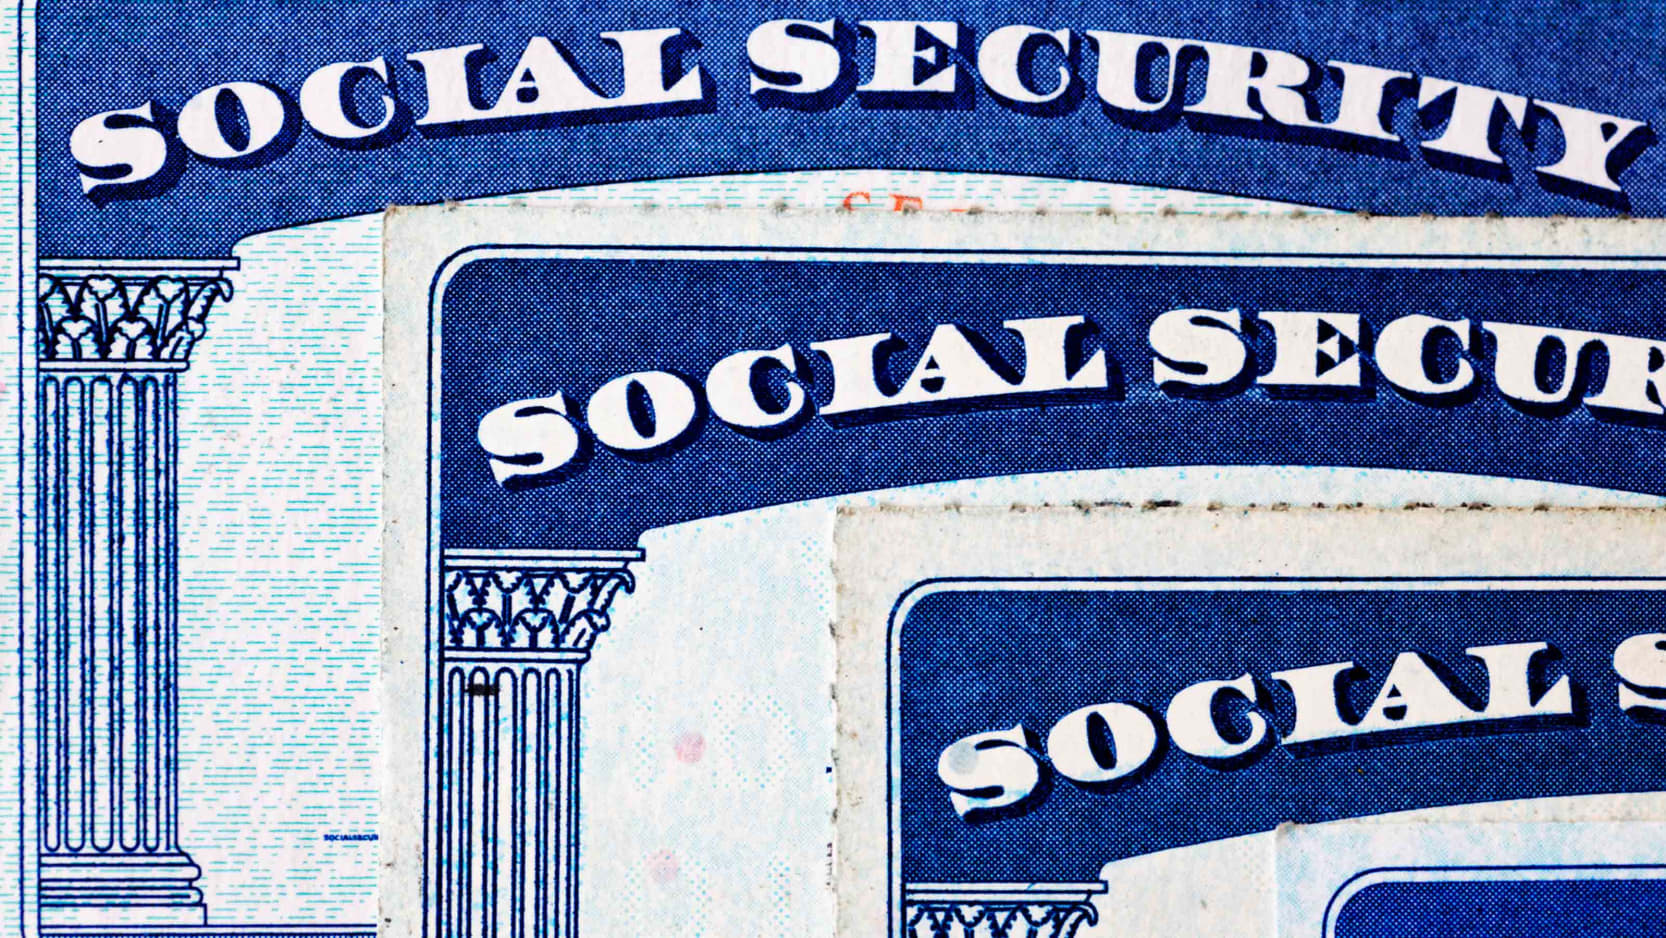 Three social security cards stacked on top of each other.